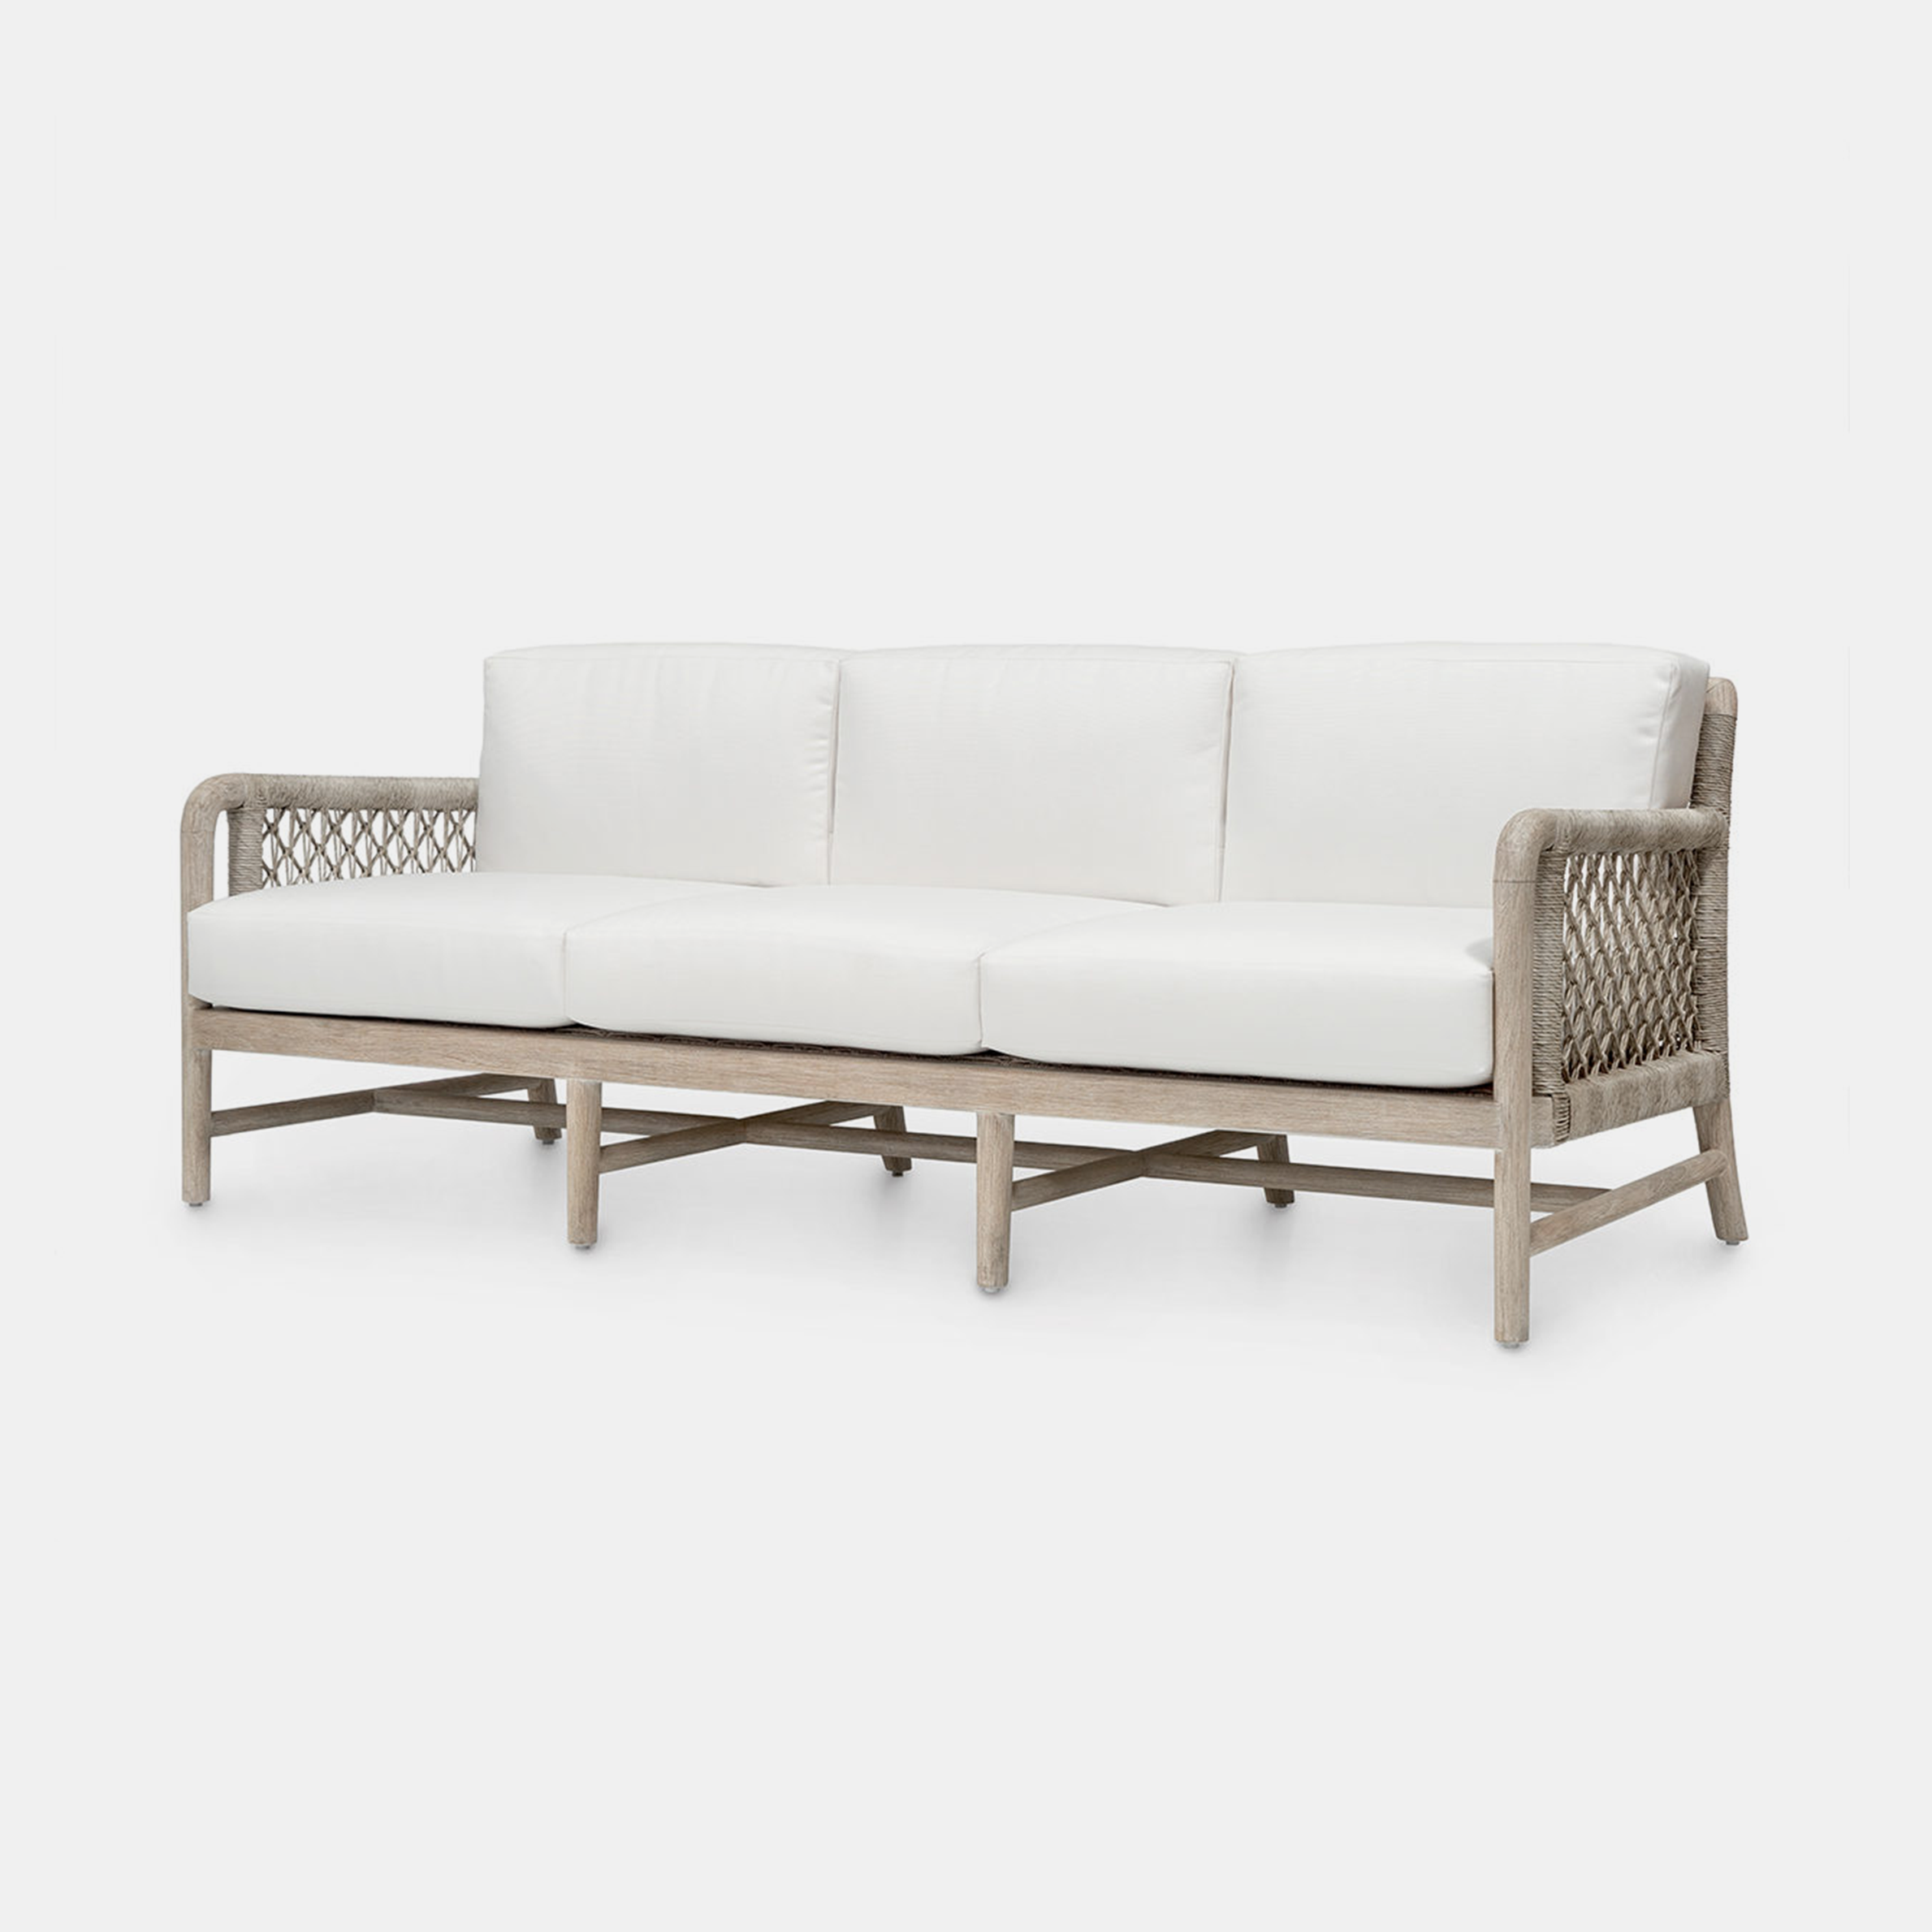 "Montecito Sofa  86""w x 34.75""d x 31.25""h Also available as side chair, arm chair, lounge chair, counter stool, and bar stool. SKU249PLK"